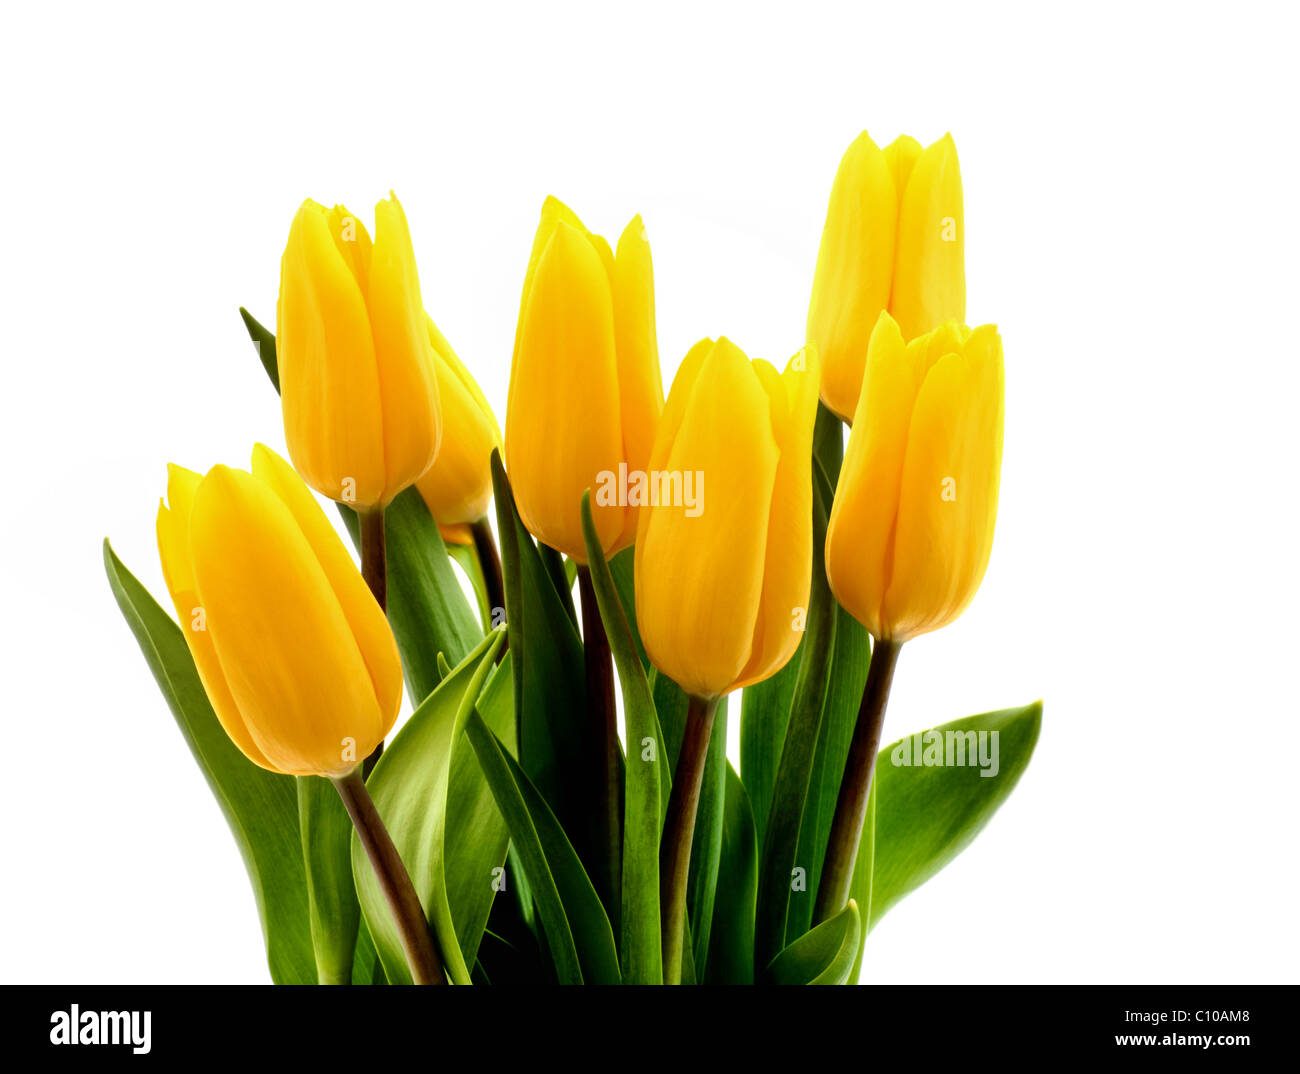 Fresh yellow tulips on a pure white background - Stock Image